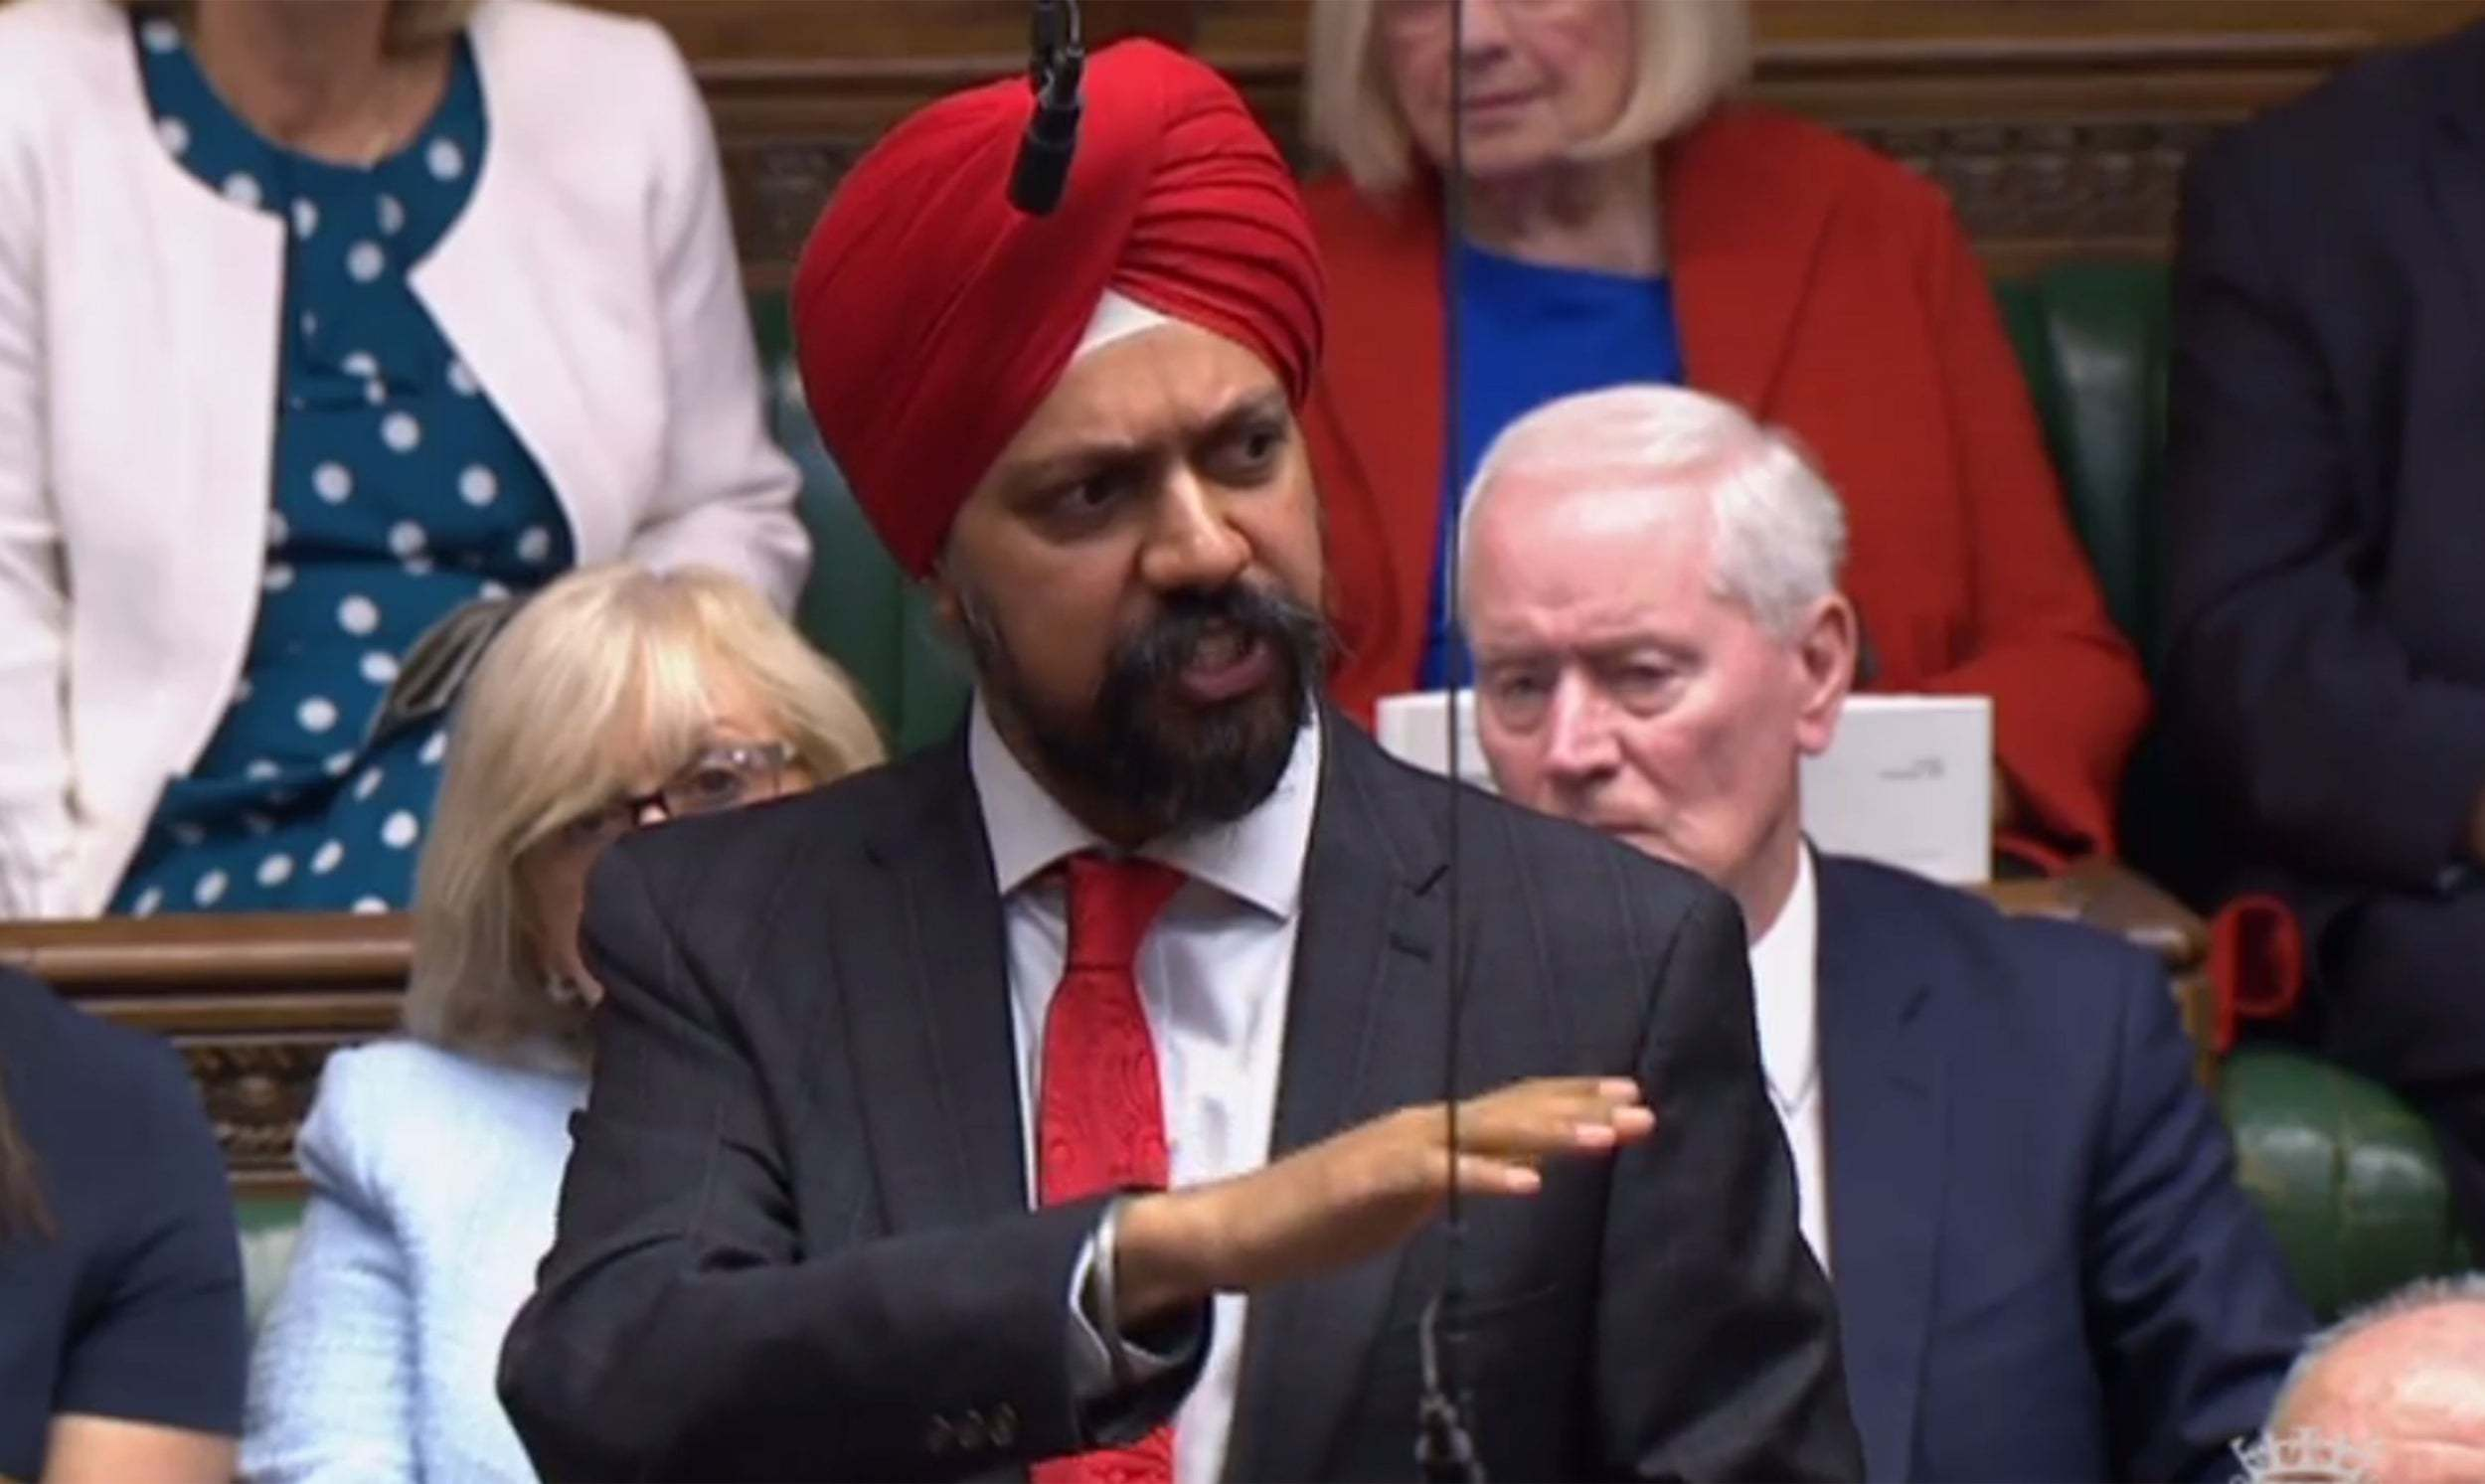 Labour MP Tanmanjeet Singh Dhesi addressing the UK parliament. — Photo courtesy The Independent